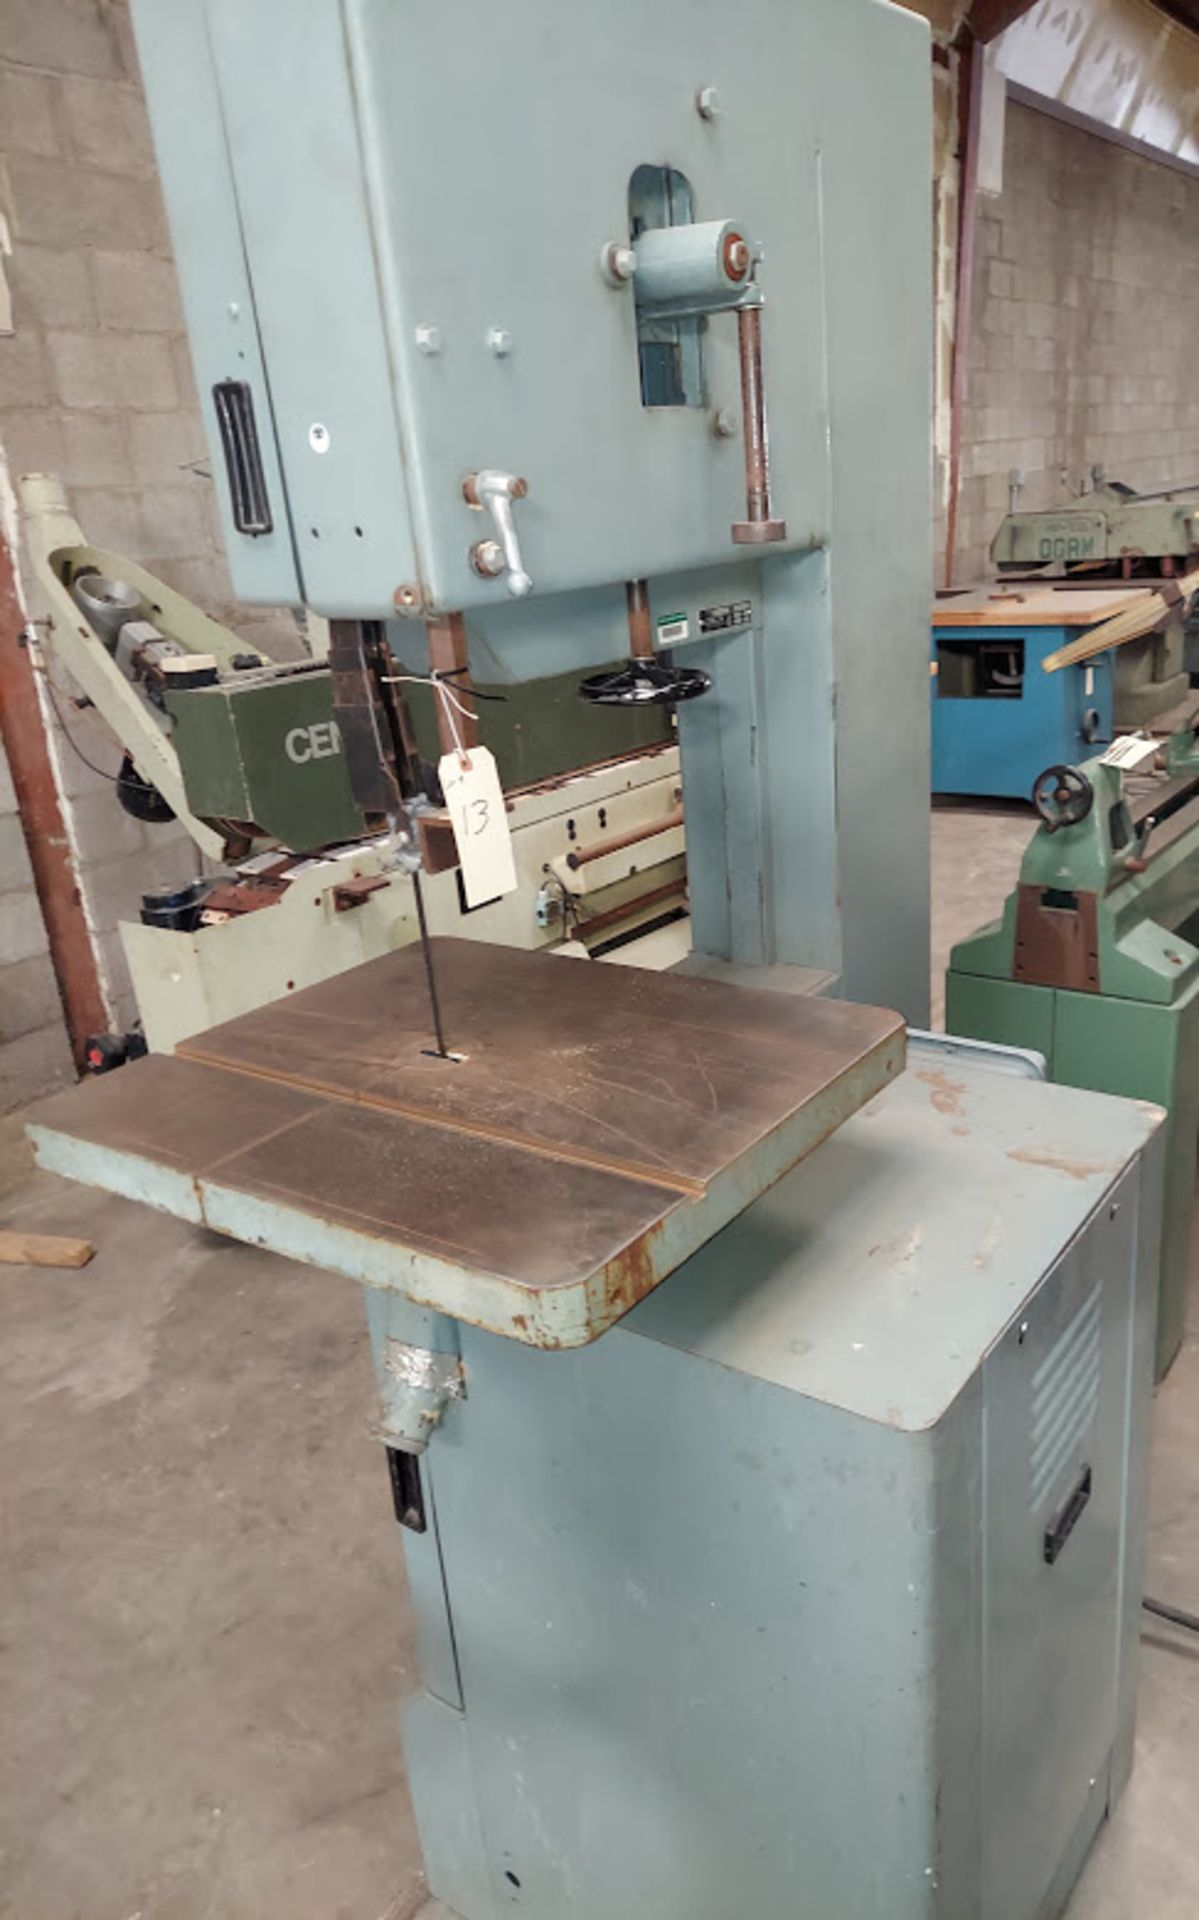 """Delta 20"""" Wood Cutting Bandsaw, Model #28-654, 2 HP 230 Volts 3 Phase, 2 Step Pully - Image 6 of 6"""